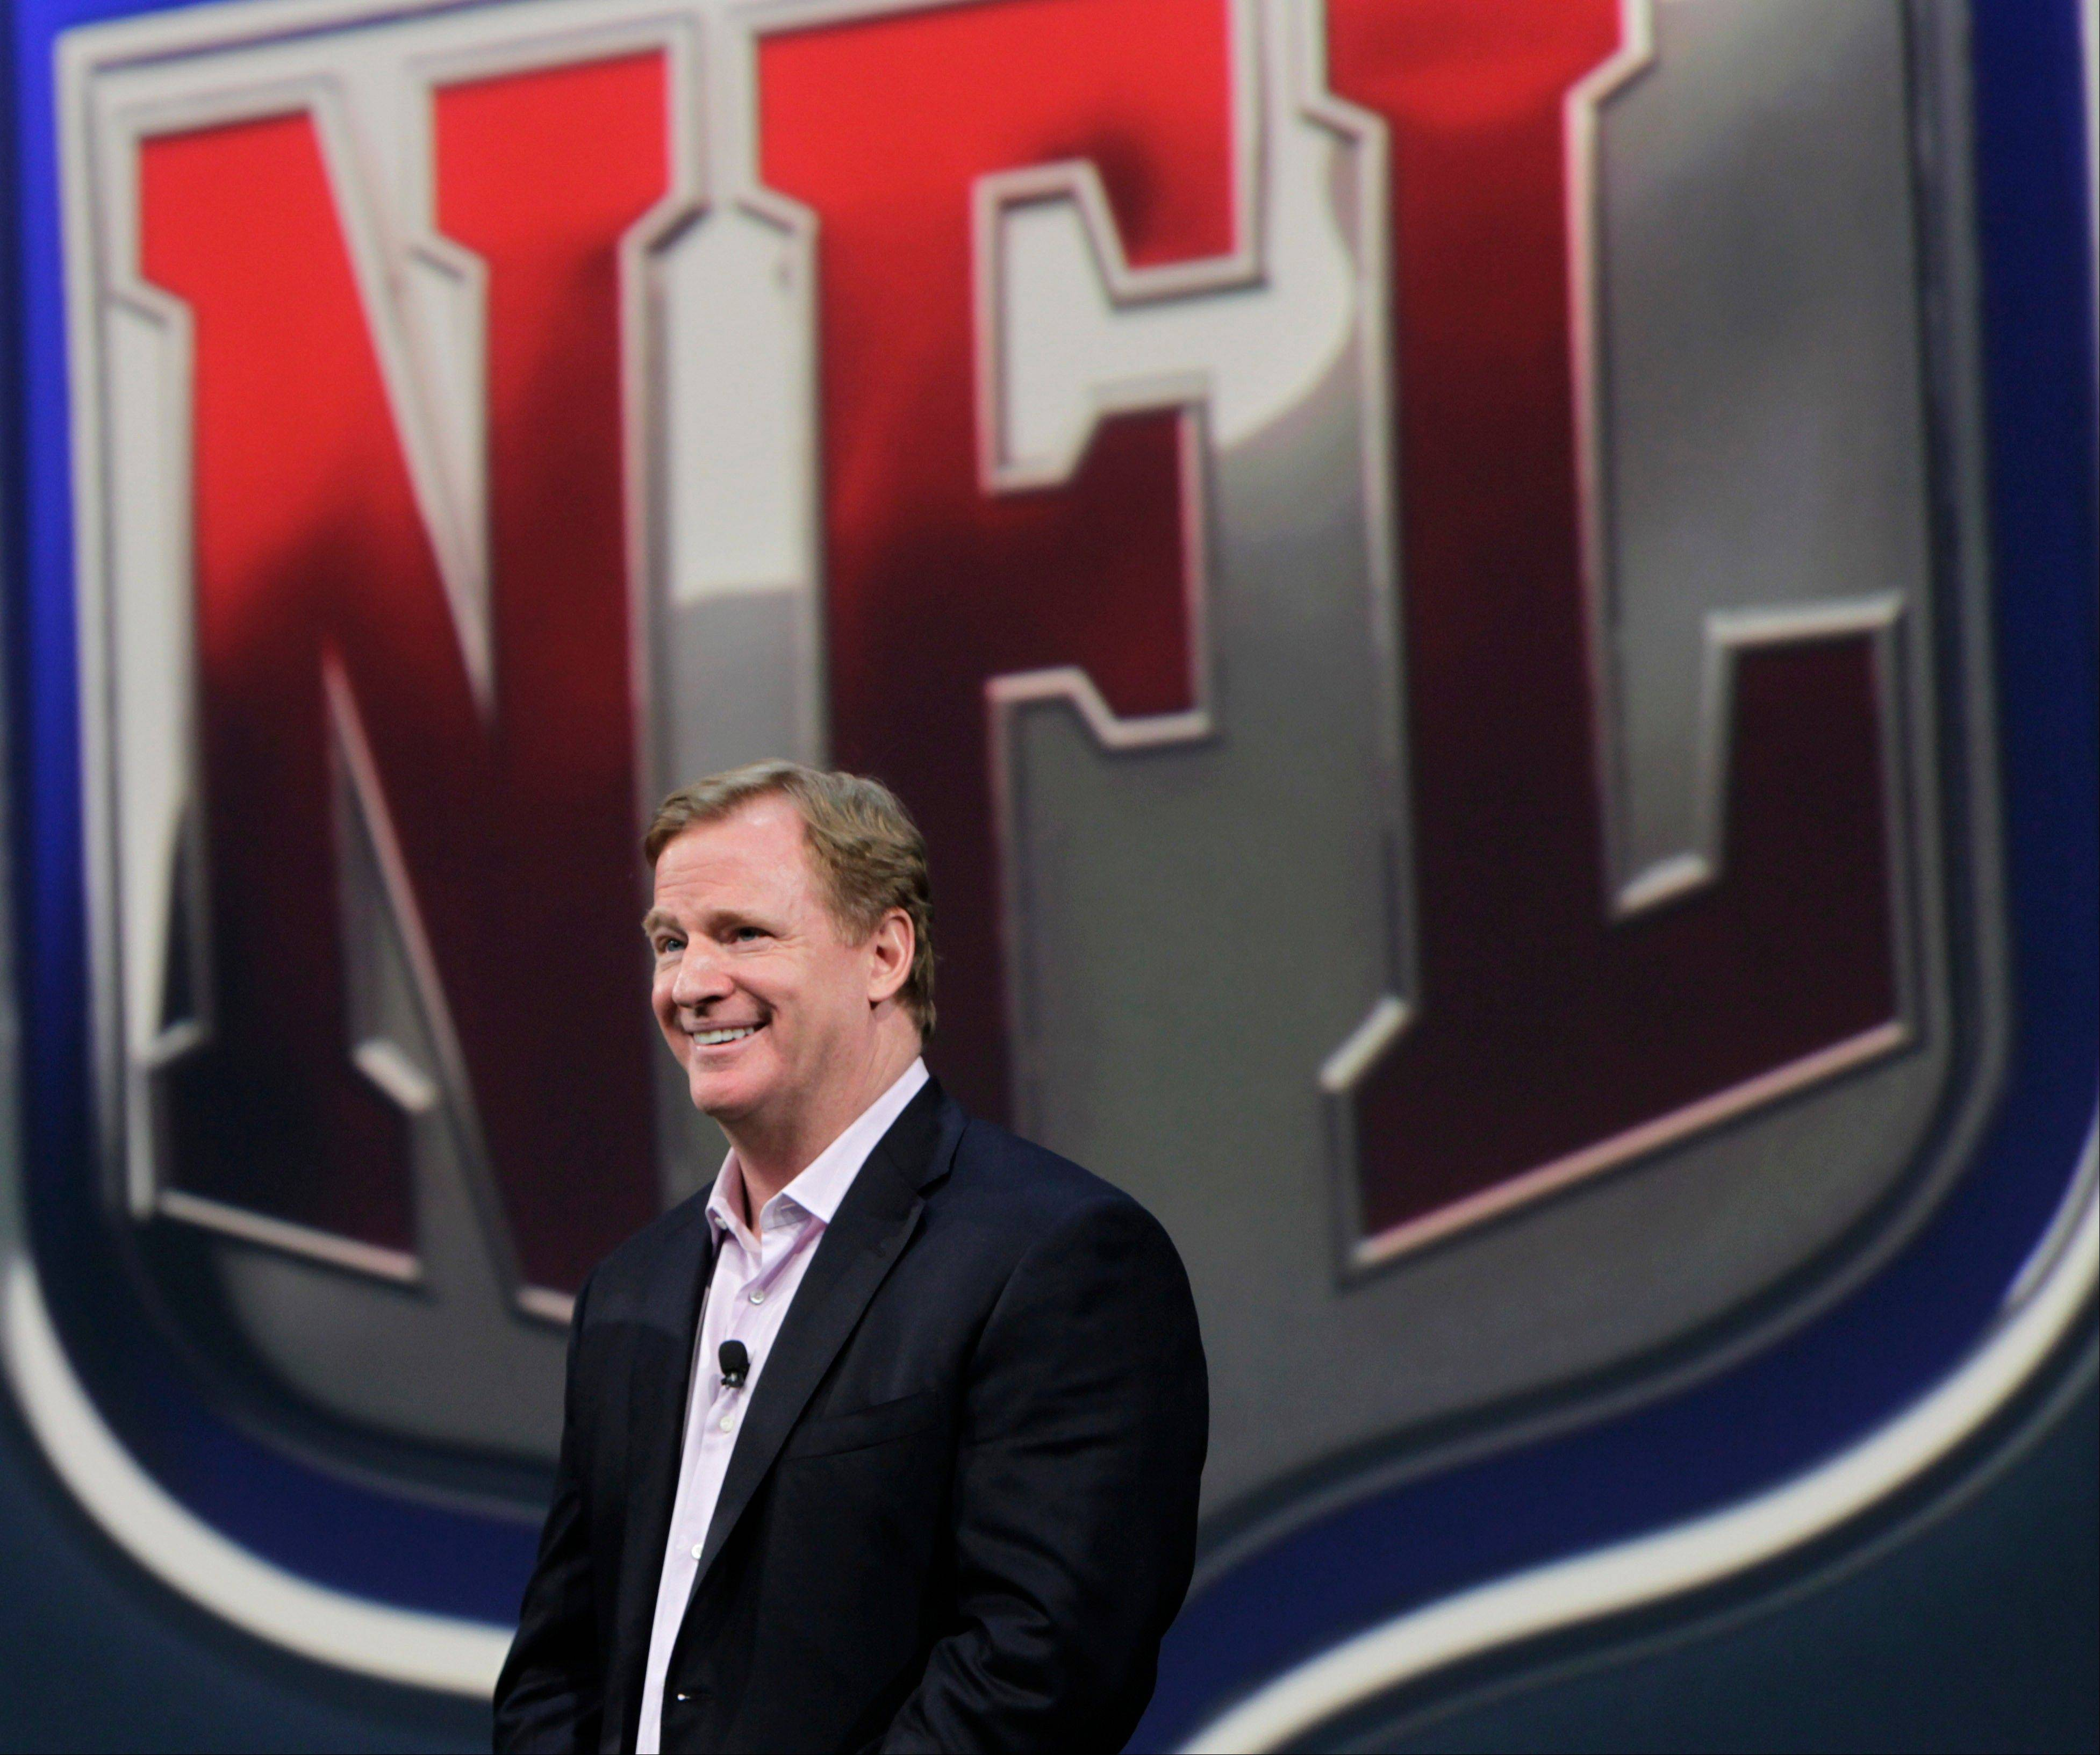 NFL Commissioner Roger Goodell smiles during a presentation in New York, Tuesday, April 3, 2012. The league and Nike showed off the new look in grand style with a gridiron-styled fashion show at a Brooklyn film studio.